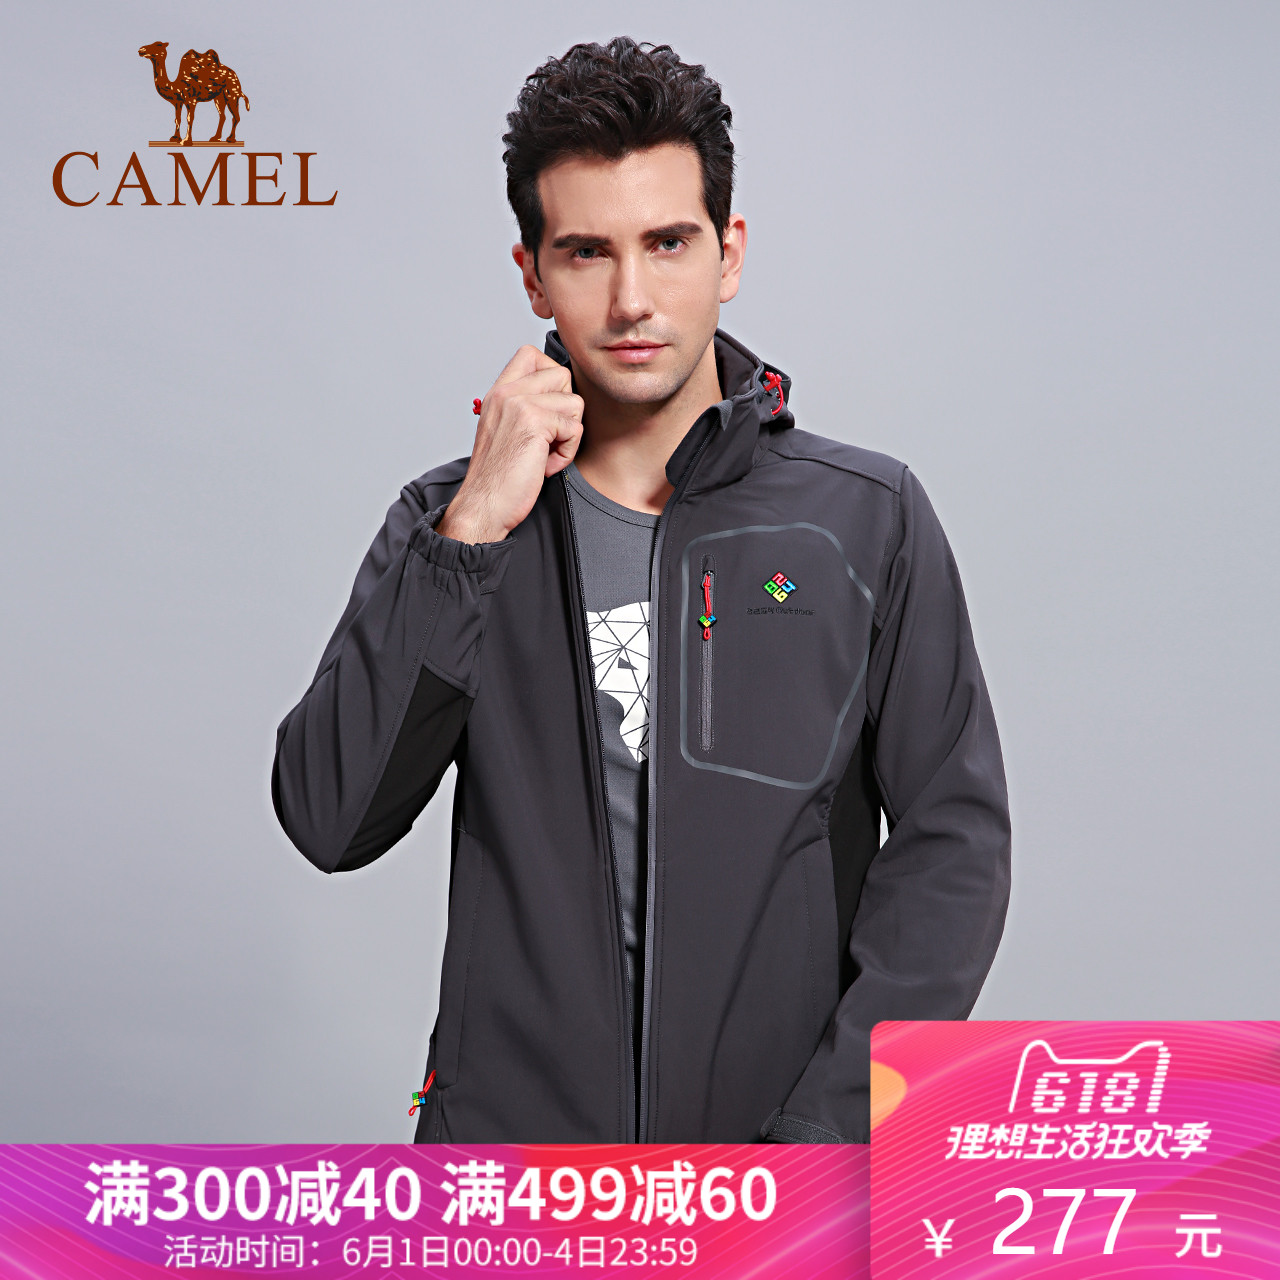 Camel &8264 Mountaineering Team Series Outdoor Autumn and Winter Men's Windproof and Cold Protection Plus Velvet Warm Hooded Soft Shell Jacket Camel &8264 Mountaineering Team Series Outdoor Autumn and Winter Men's Windproof and Cold Protection Plus Velvet Warm Hooded Soft Shell Jacket